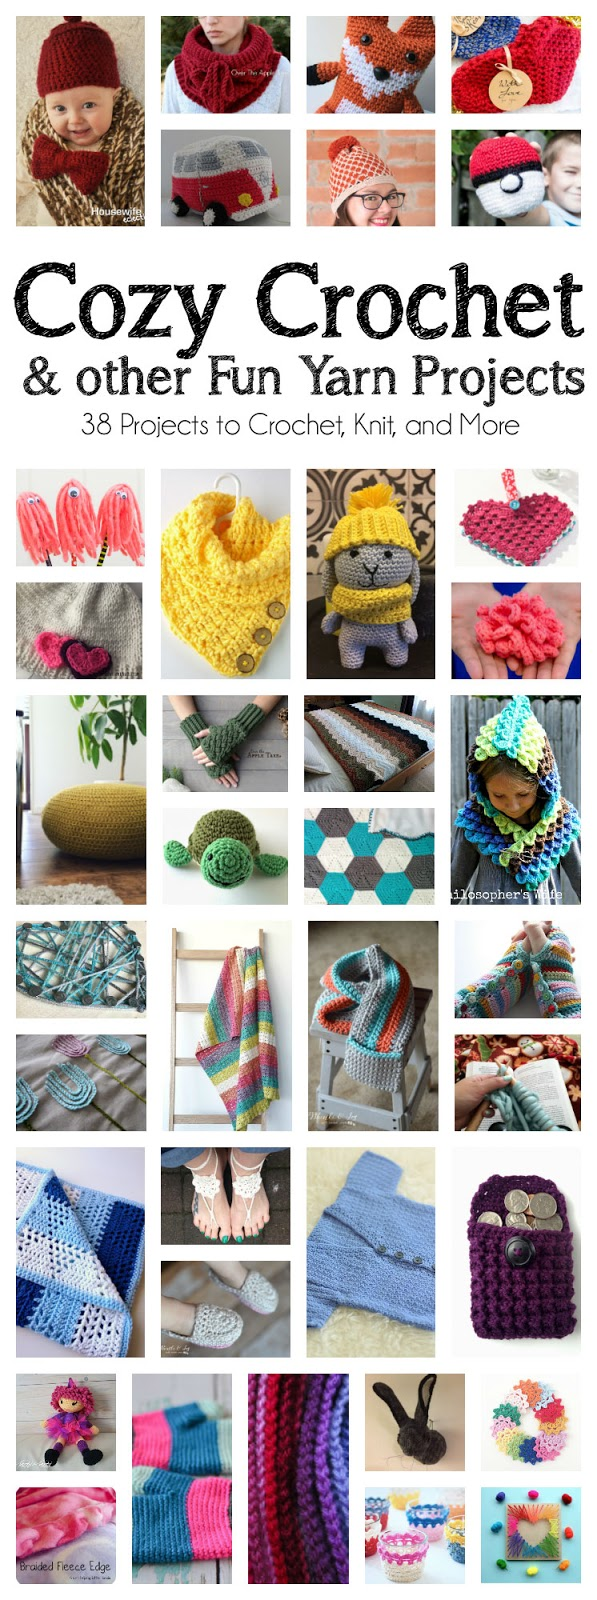 loads of awesome crochet and yarn DIY projects and crafts